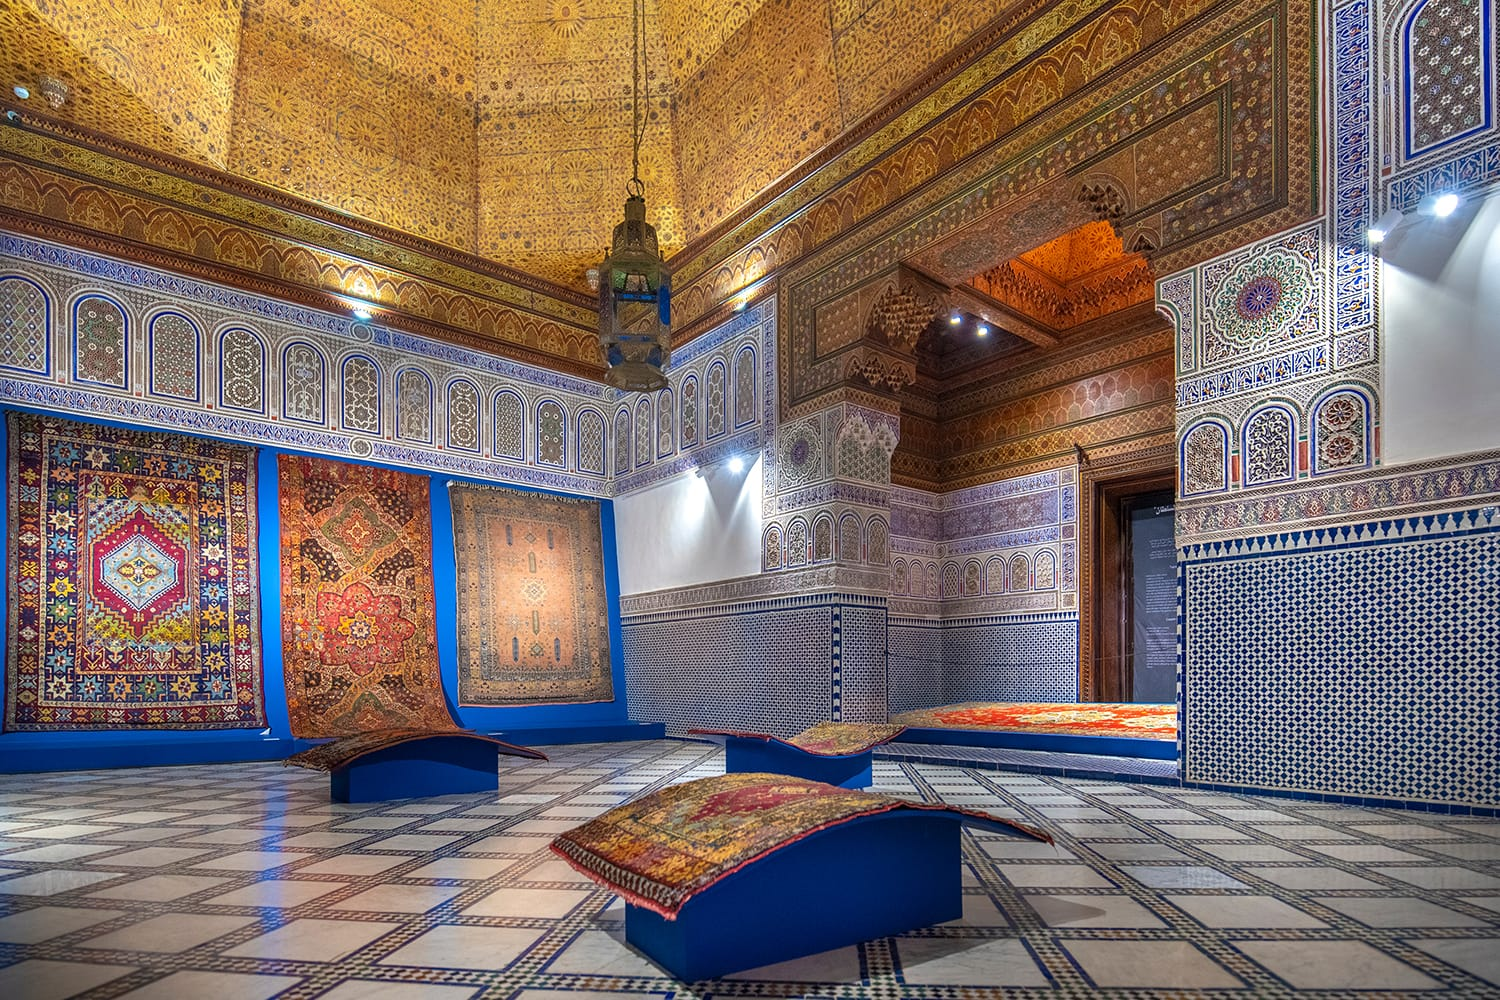 Interior of Dar Si Said - Museum of Moroccan Arts, Crafts, Carpets and Weaving in Marrakech, Morocco